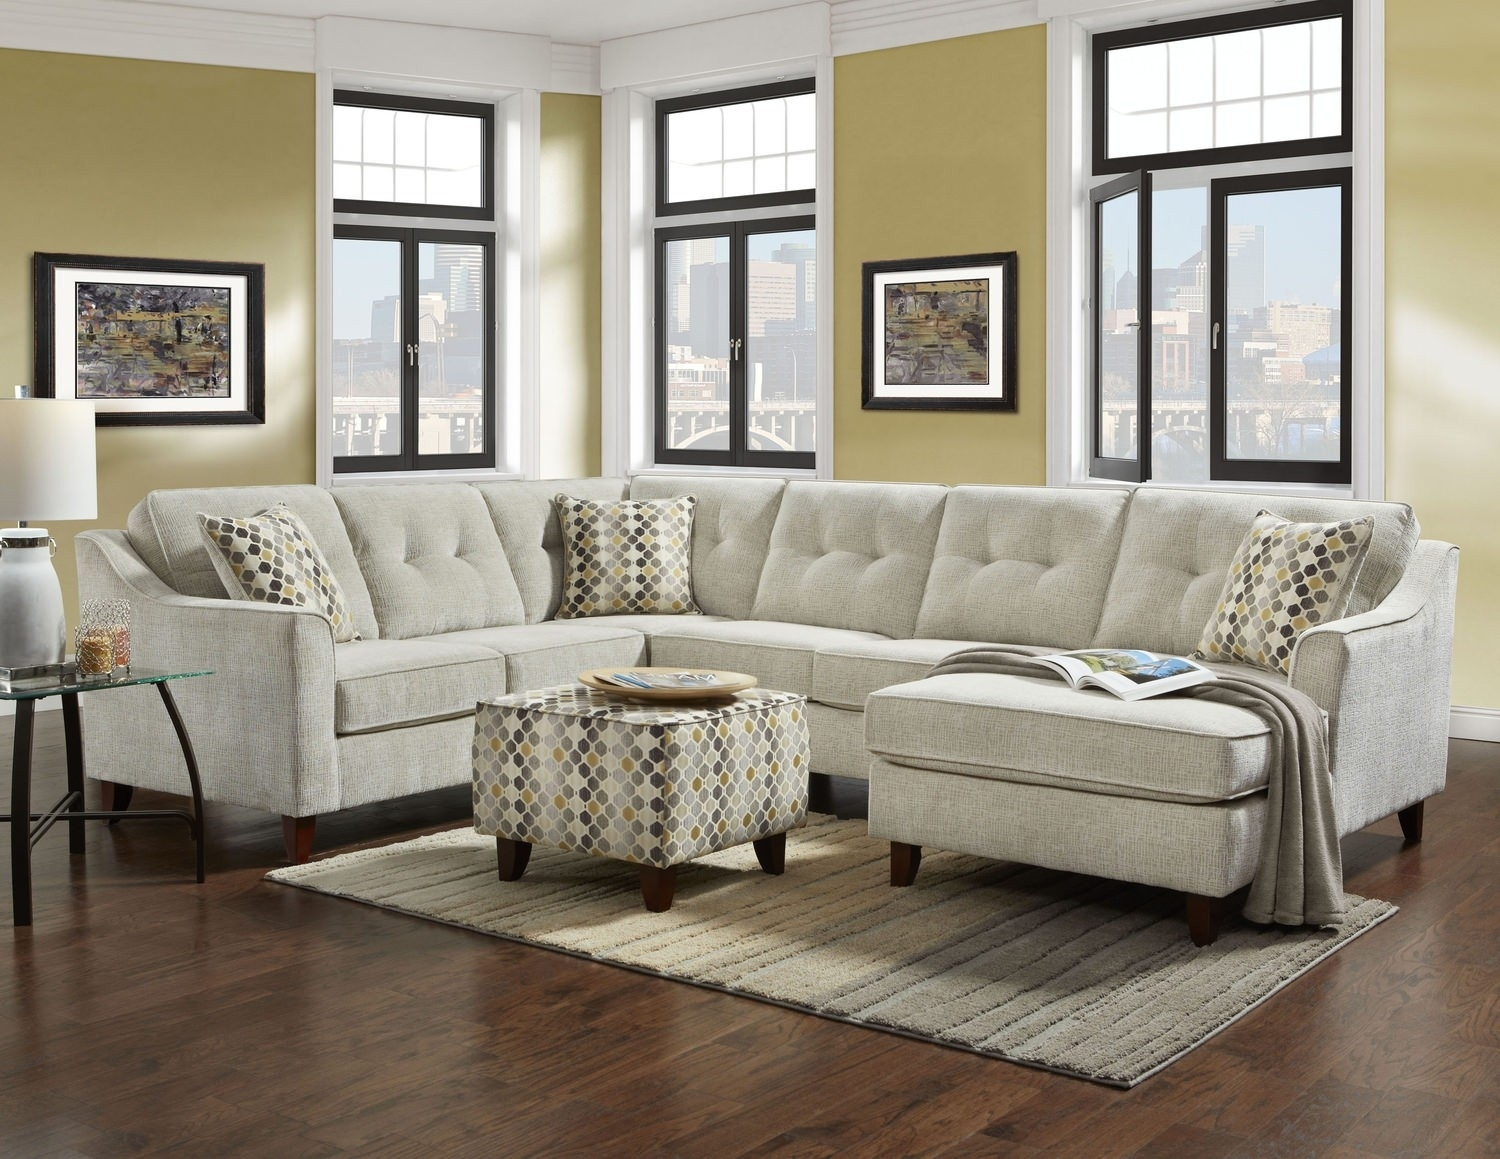 3 Piece Sectional Malbry Point W Laf Chaise Living Spaces 223533 0 With Malbry Point 3 Piece Sectionals With Raf Chaise (Image 5 of 25)